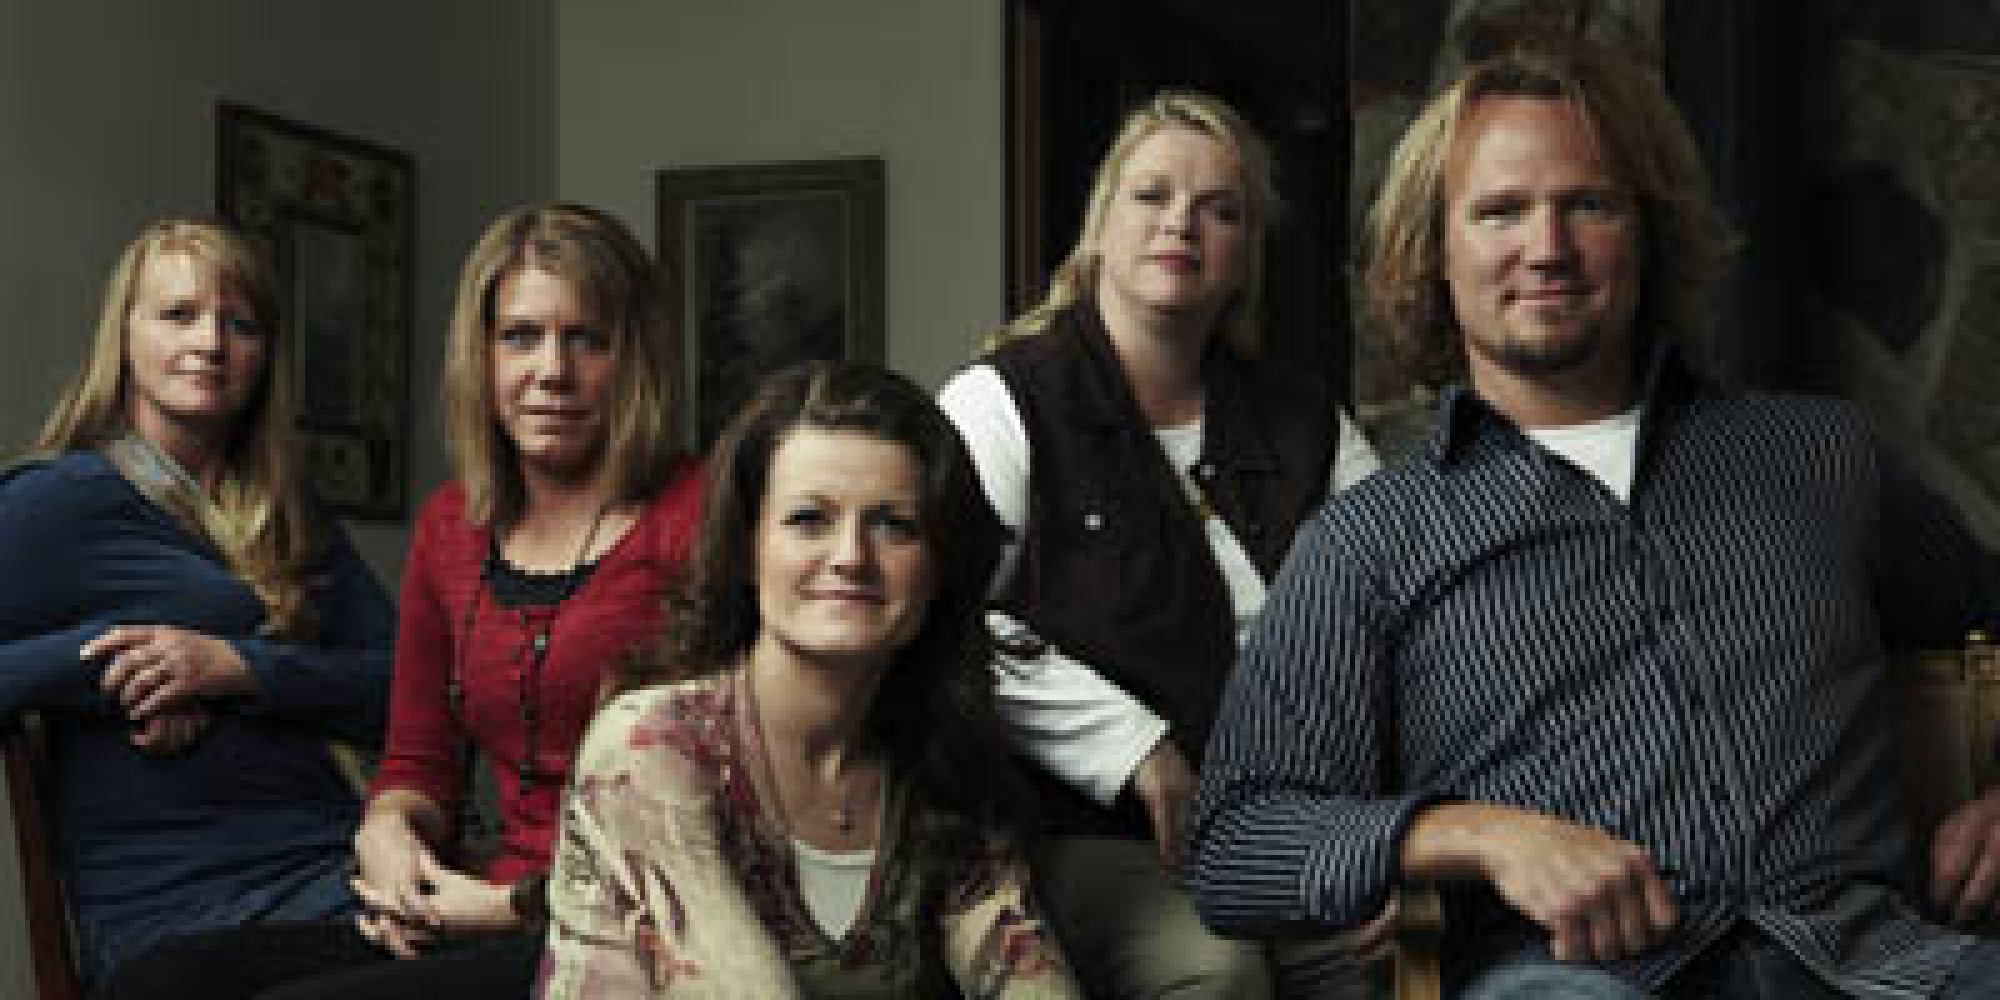 utah polygamy court ruling on sister wives case confirms fears  utah polygamy court ruling on sister wives case confirms fears of social conservatives huffpost